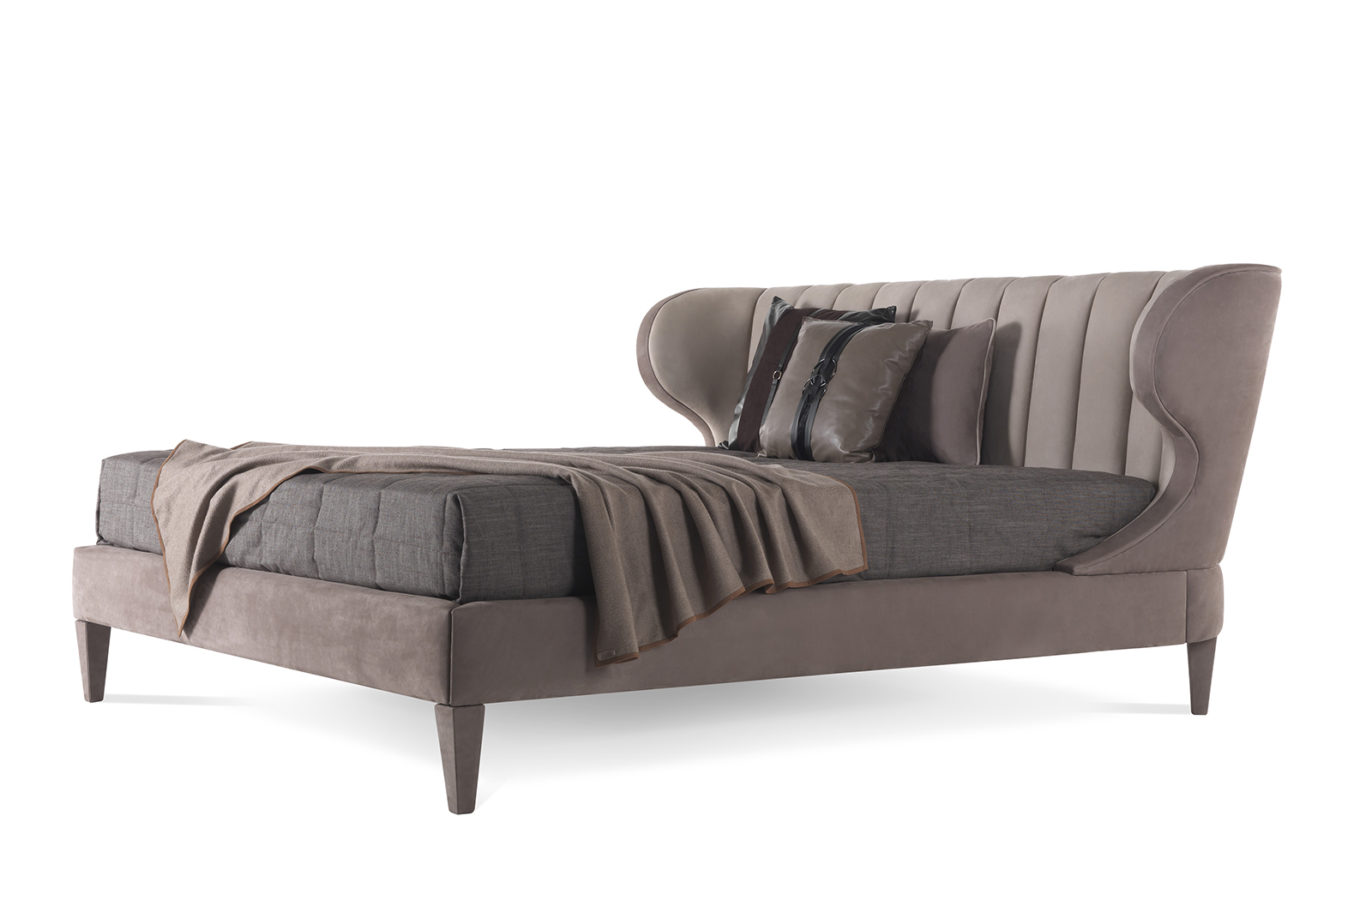 Gianfranco Ferre Home Dunlop Bed 03